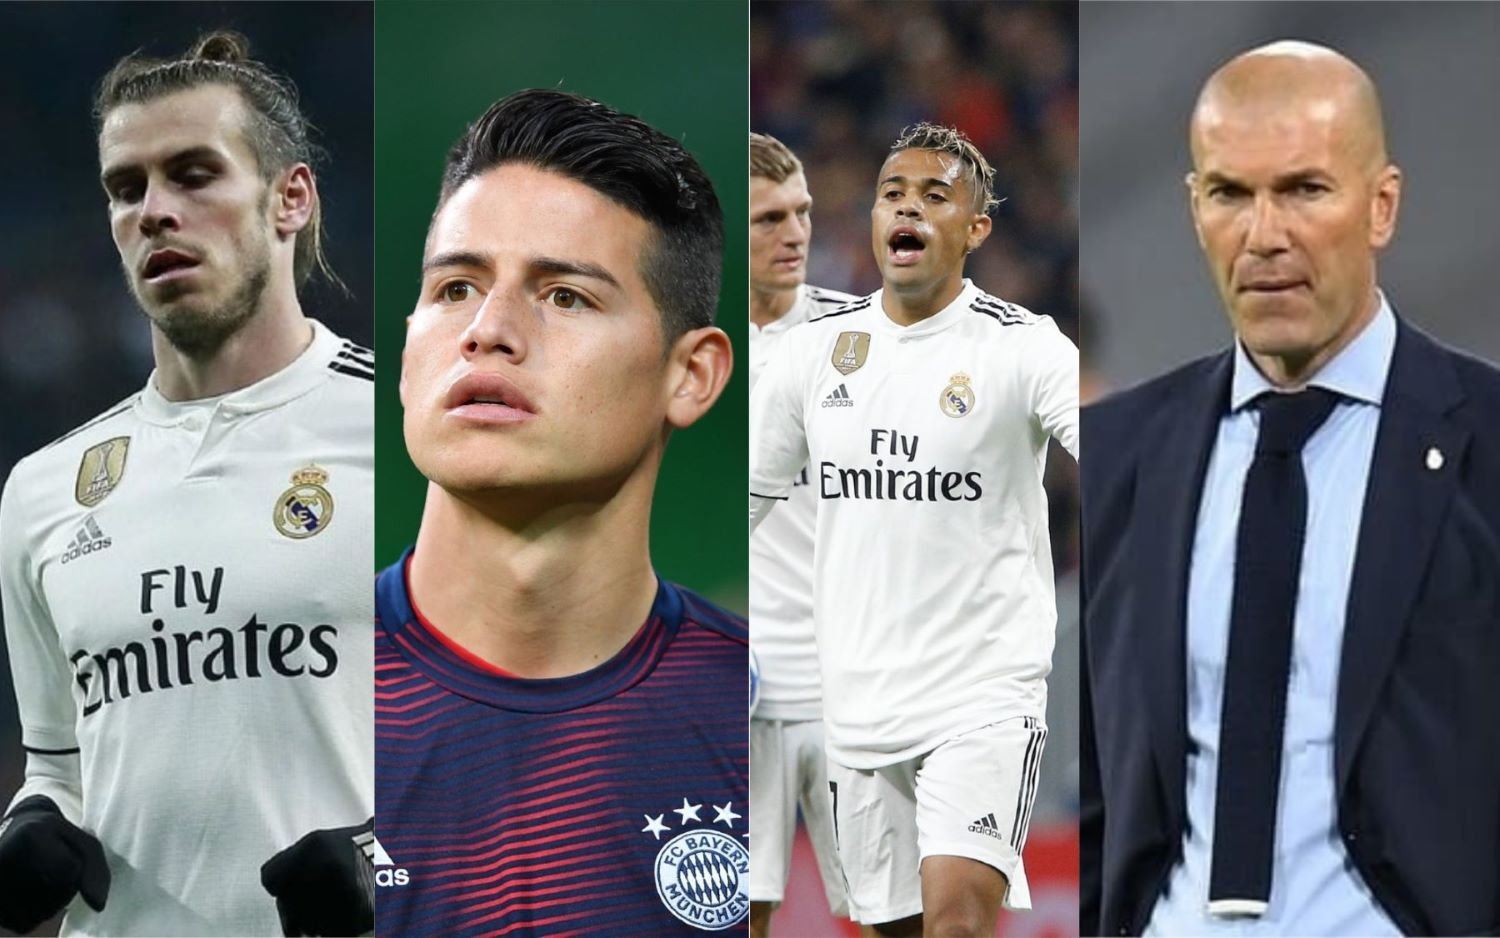 Scuttlebutt From Real Madrid: Bale, James, Mariano, Zidane